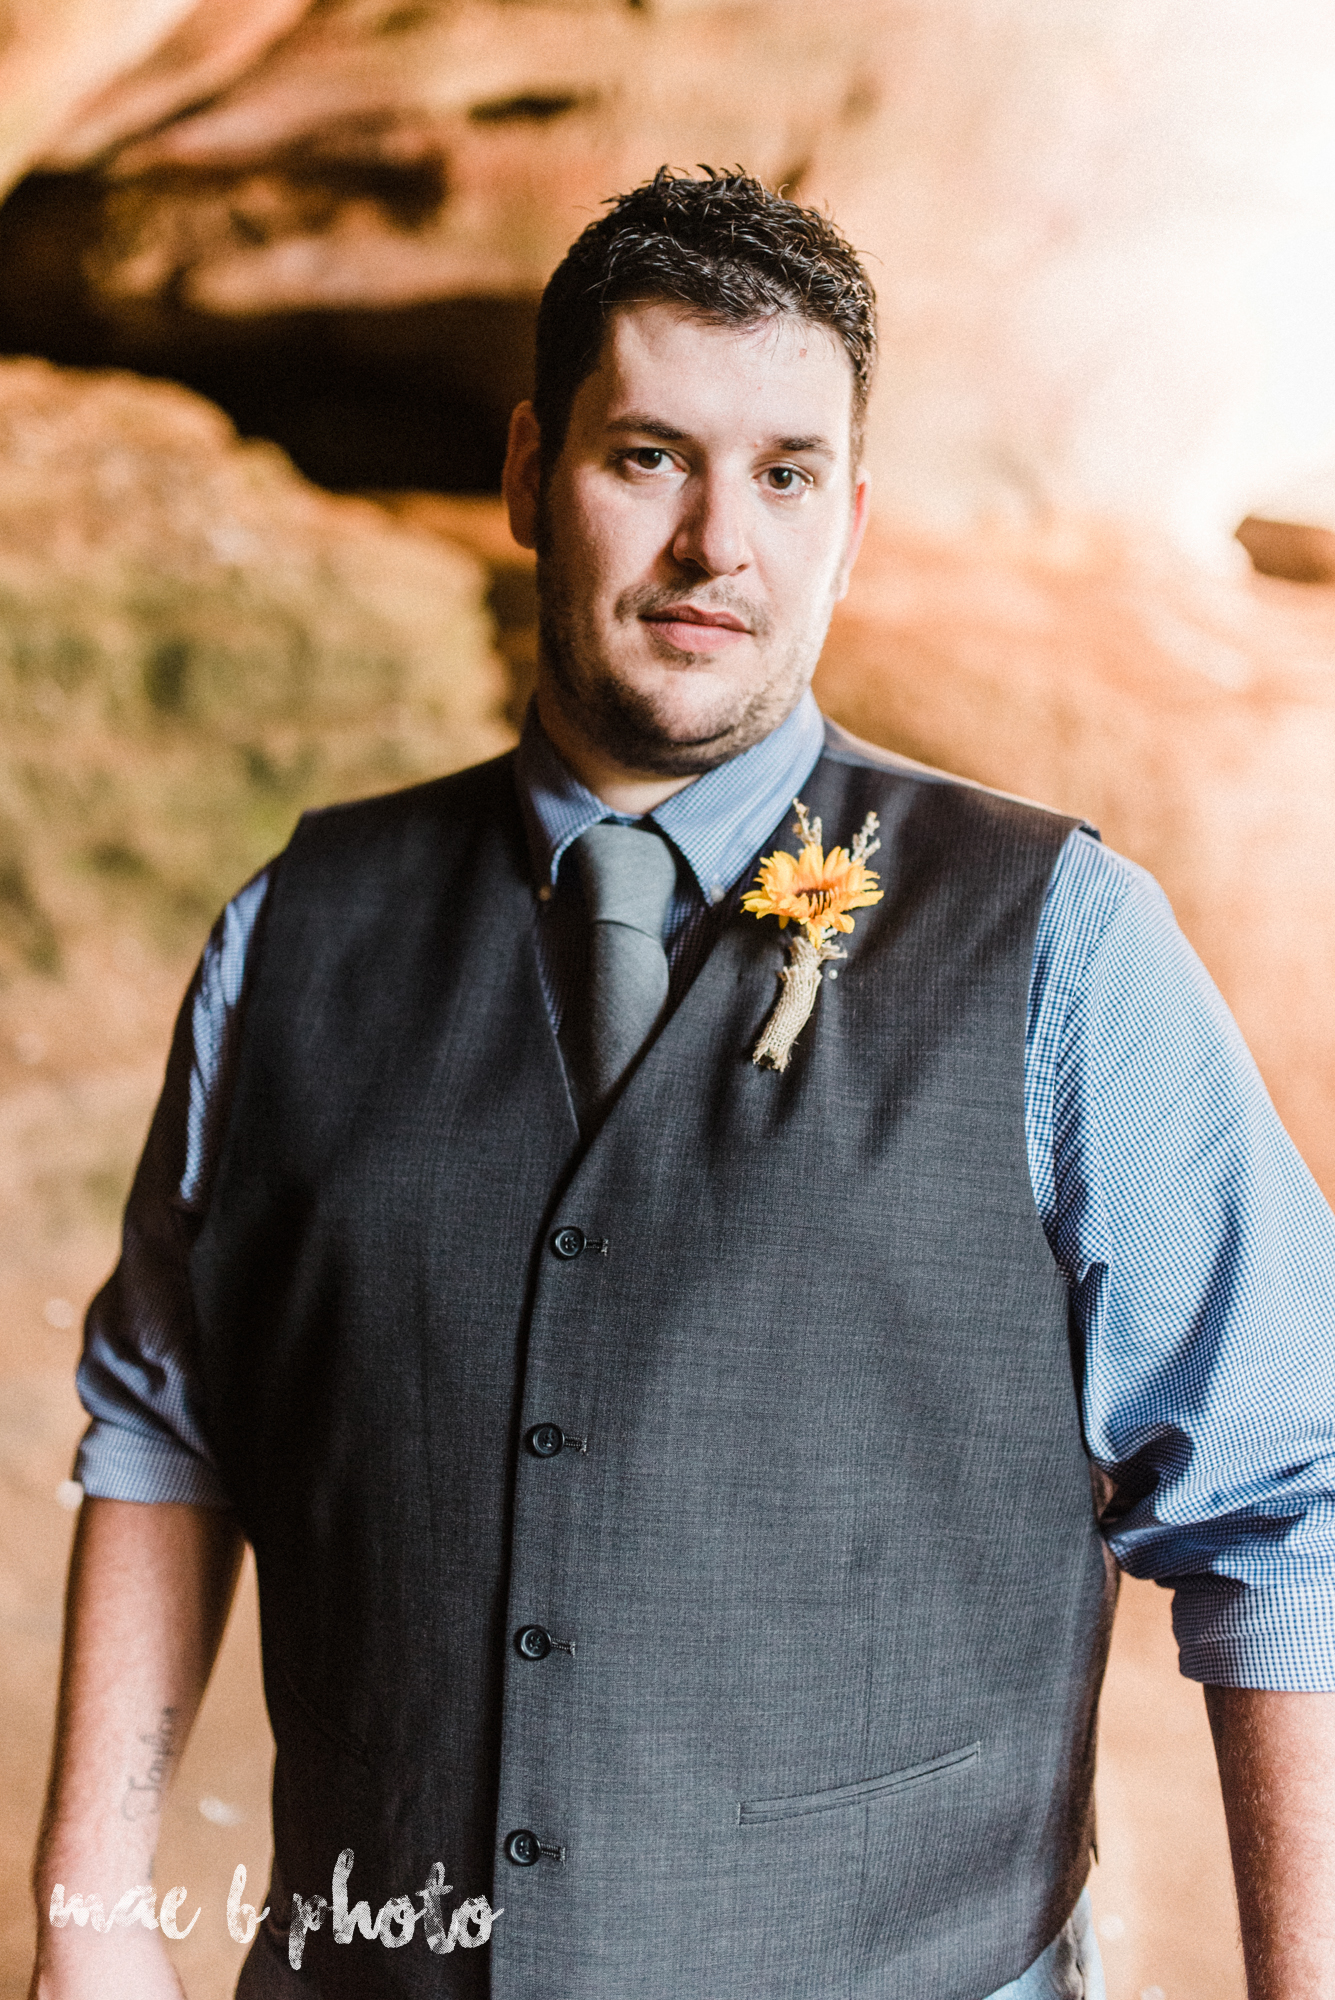 bobbi and pat's intimate fall cabin elopement in hocking hills old man's cave and rock house in logan ohio photographed by youngstown wedding photographer mae b photo-96.jpg